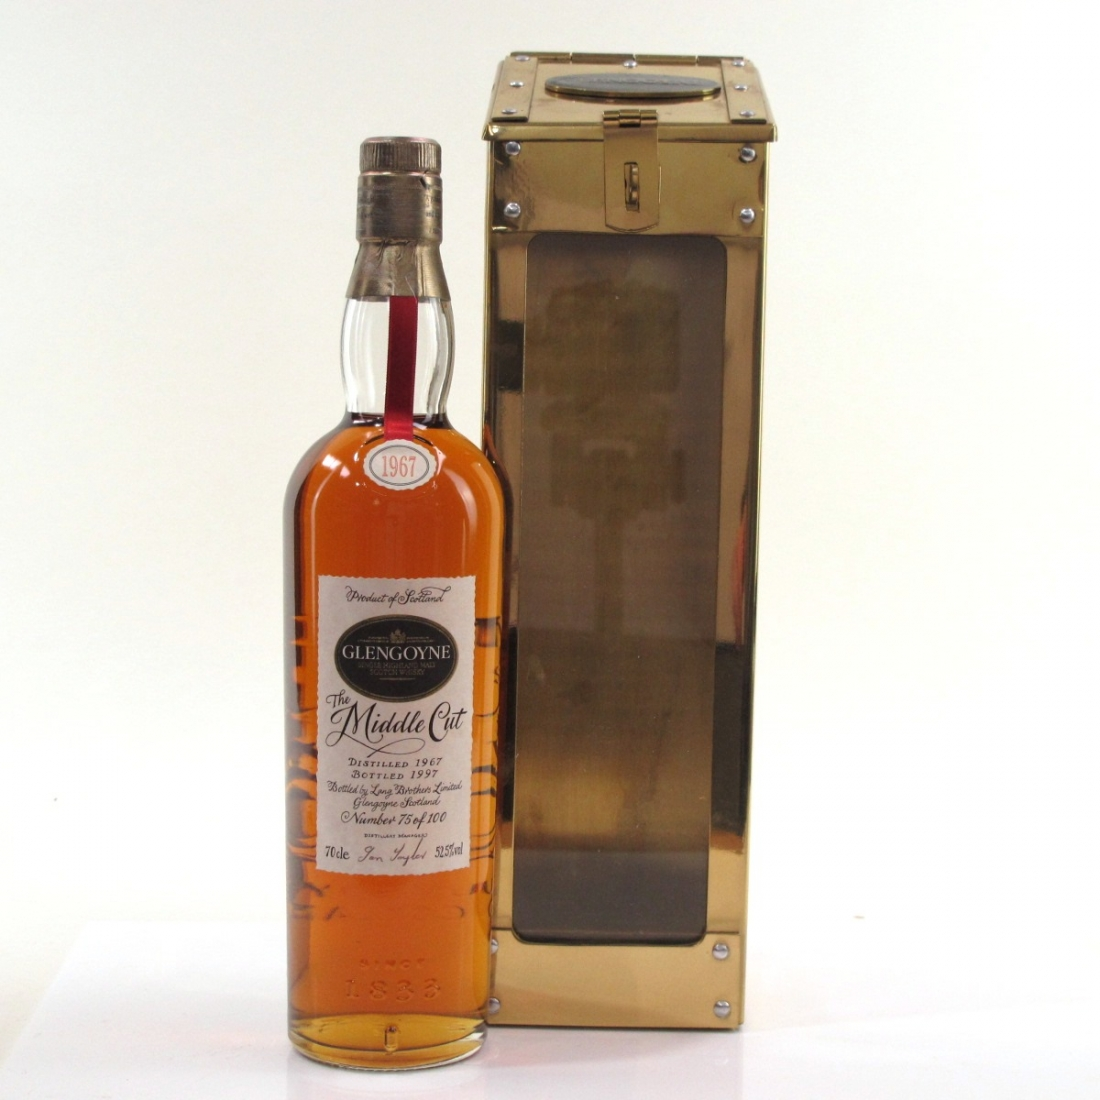 Glengoyne 1967 The Middle Cut